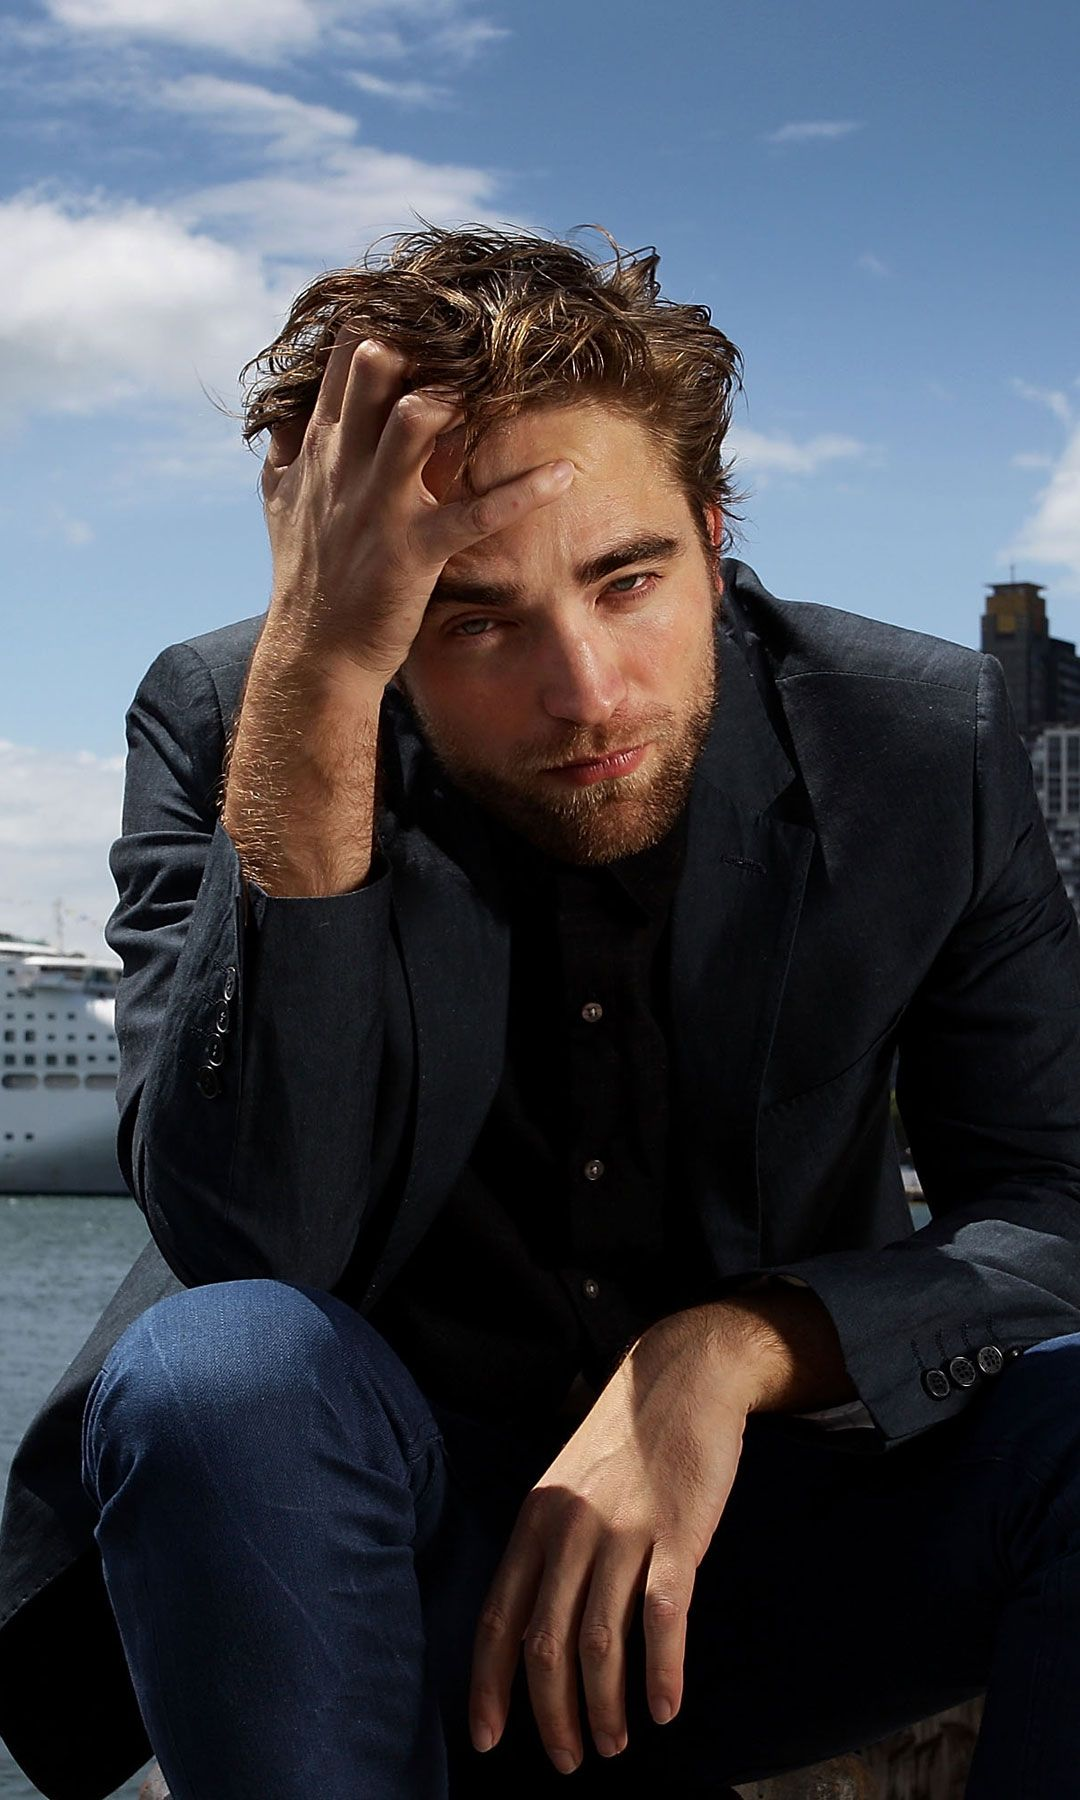 Let these hot Robert Pattinson GIFs make your day a little brighter.